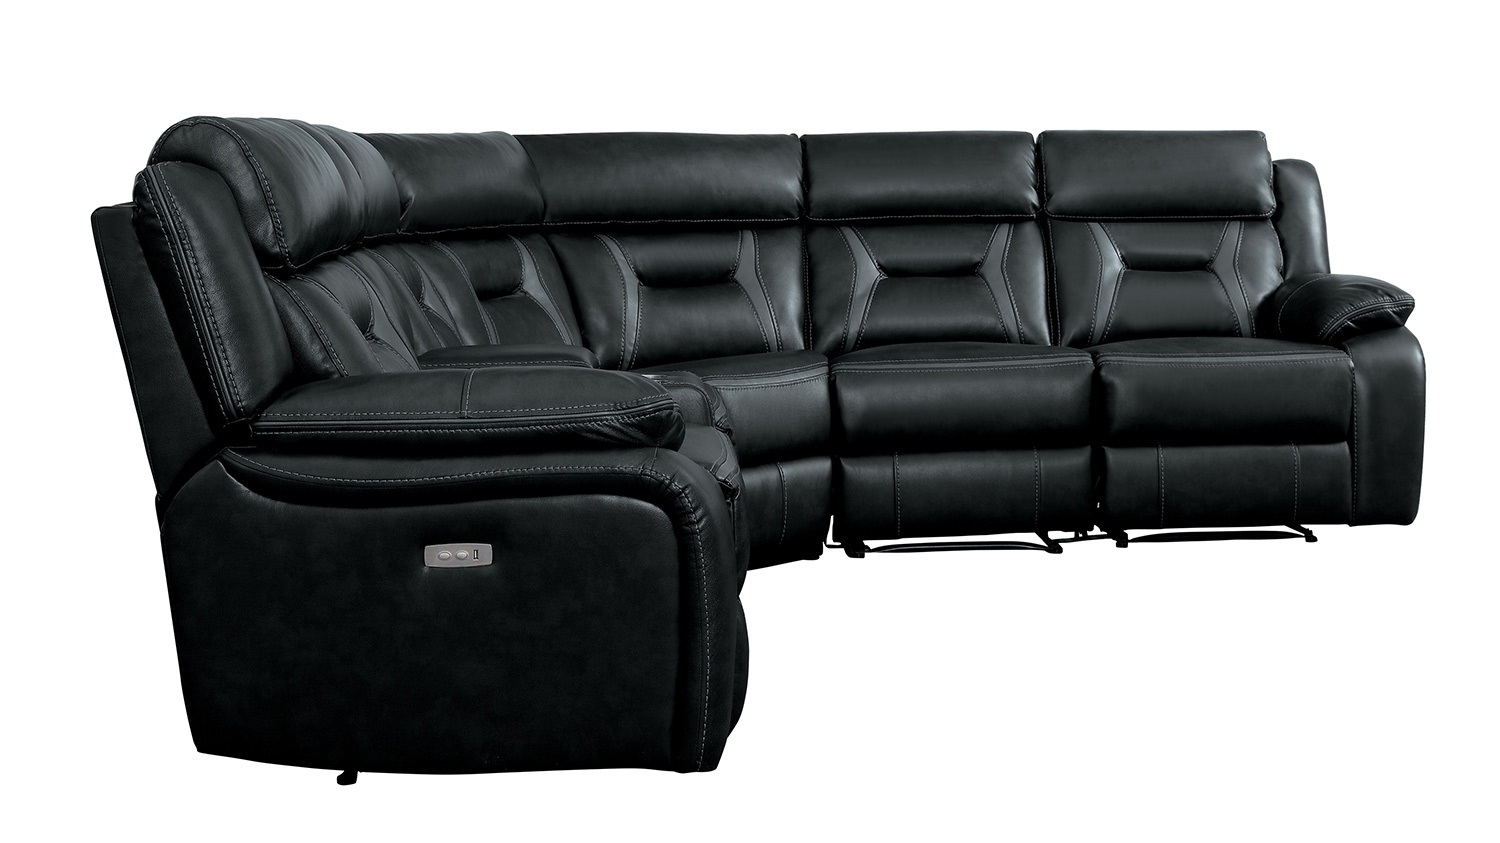 Homelegance Amite Power Reclining Sectional Sofa Set - Dark Gray